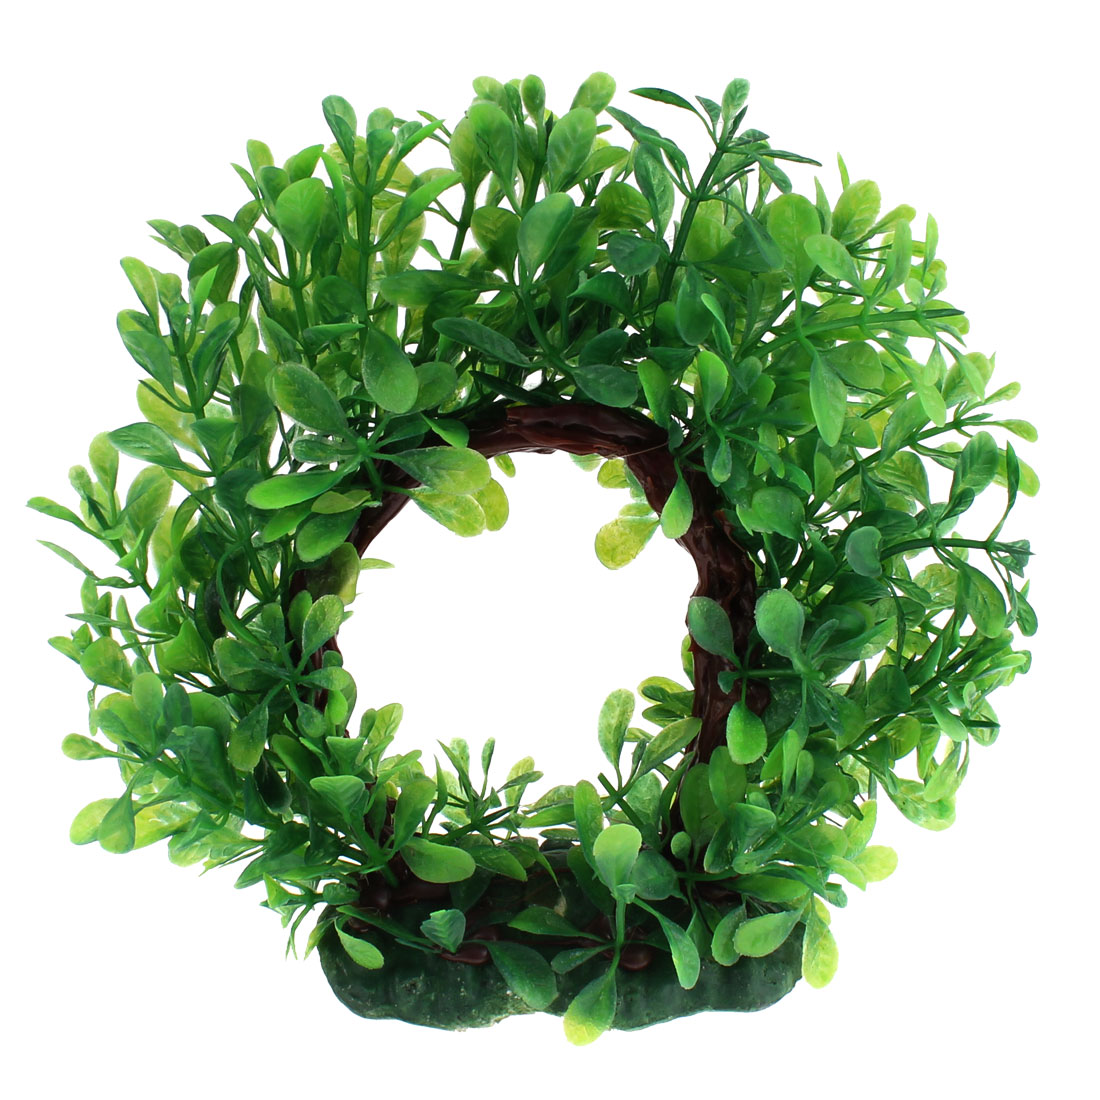 Aquarium Plastic Artificial Curve Design Water Plant Ornament